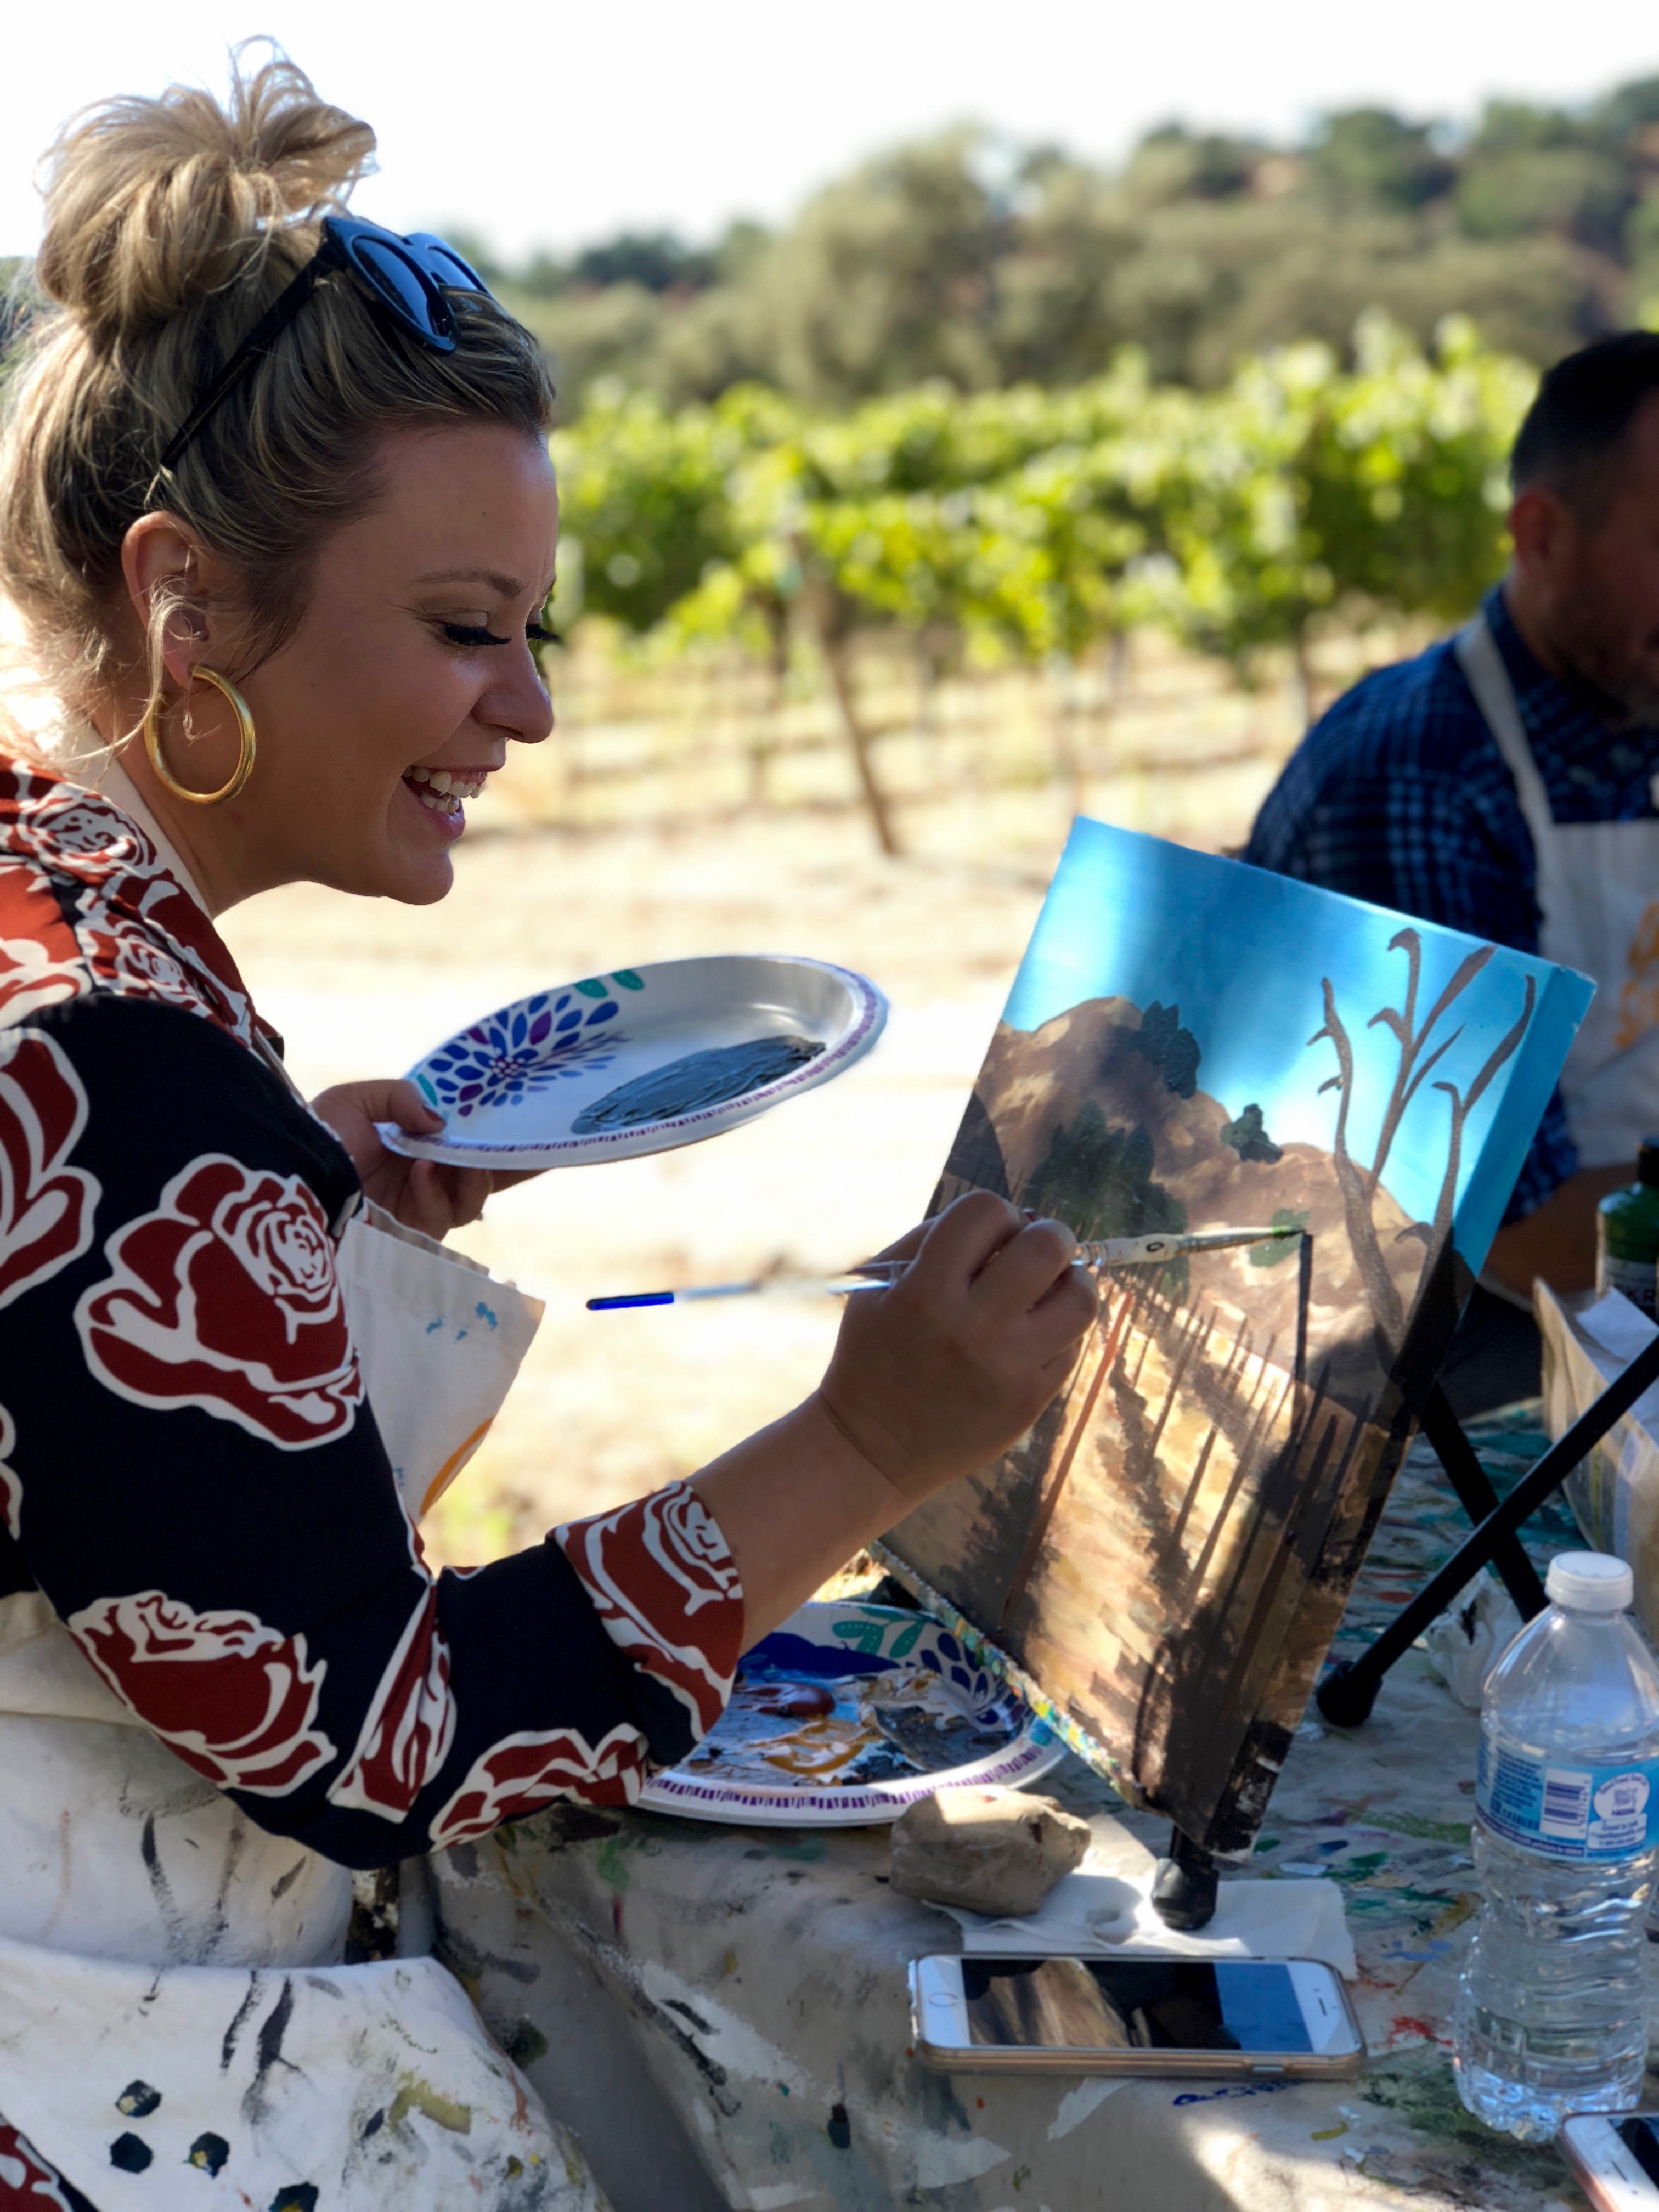 Painting in the Vineyard at Folded Hills Estate Winery